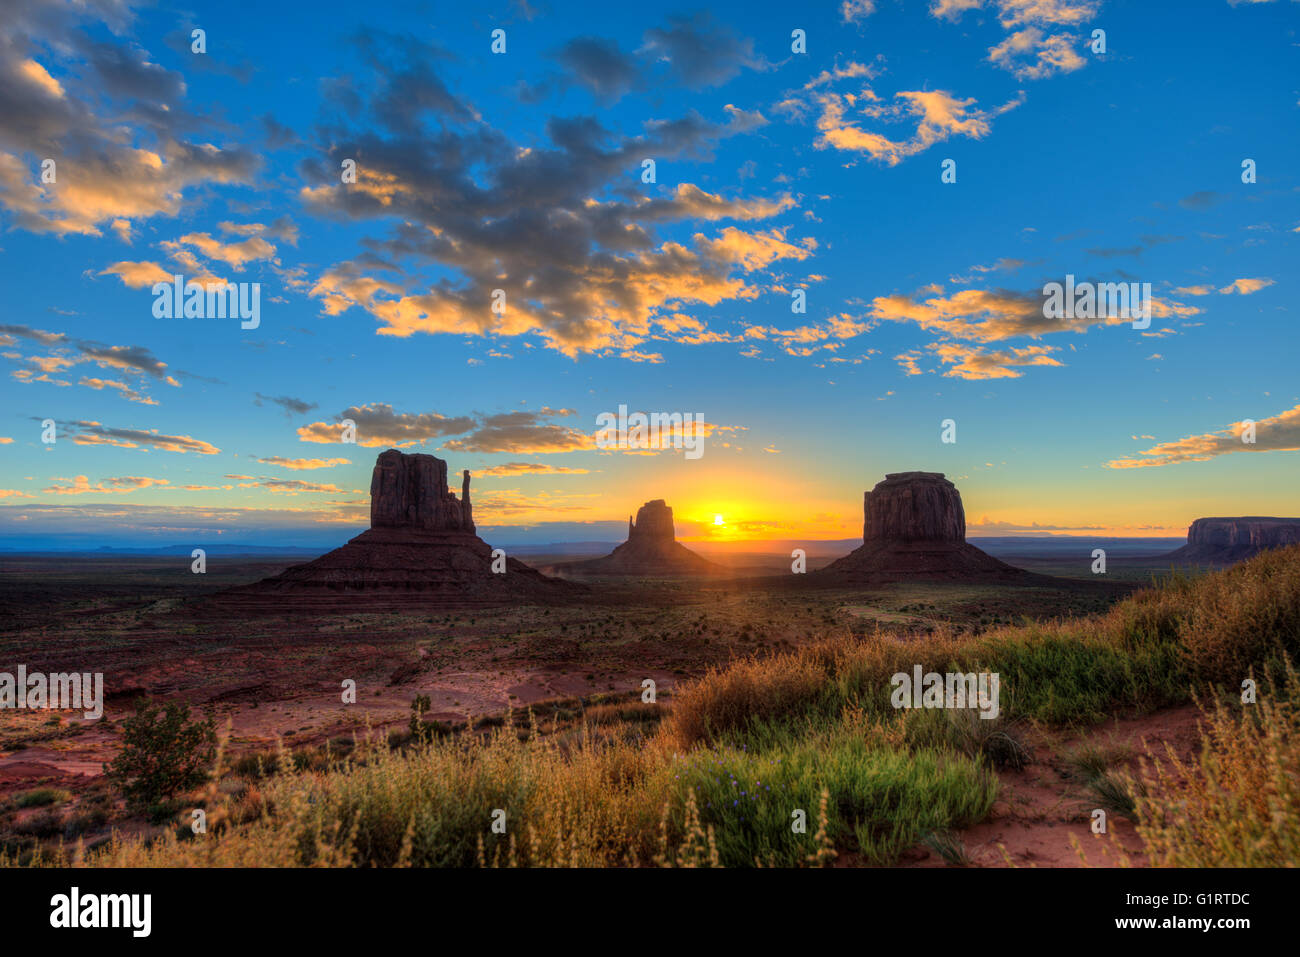 Sunrise, mesas West Mitten Butte, East Mitten Butte, Merrick Butte, Scenic Drive, Monument Valley, Monument Valley - Stock Image